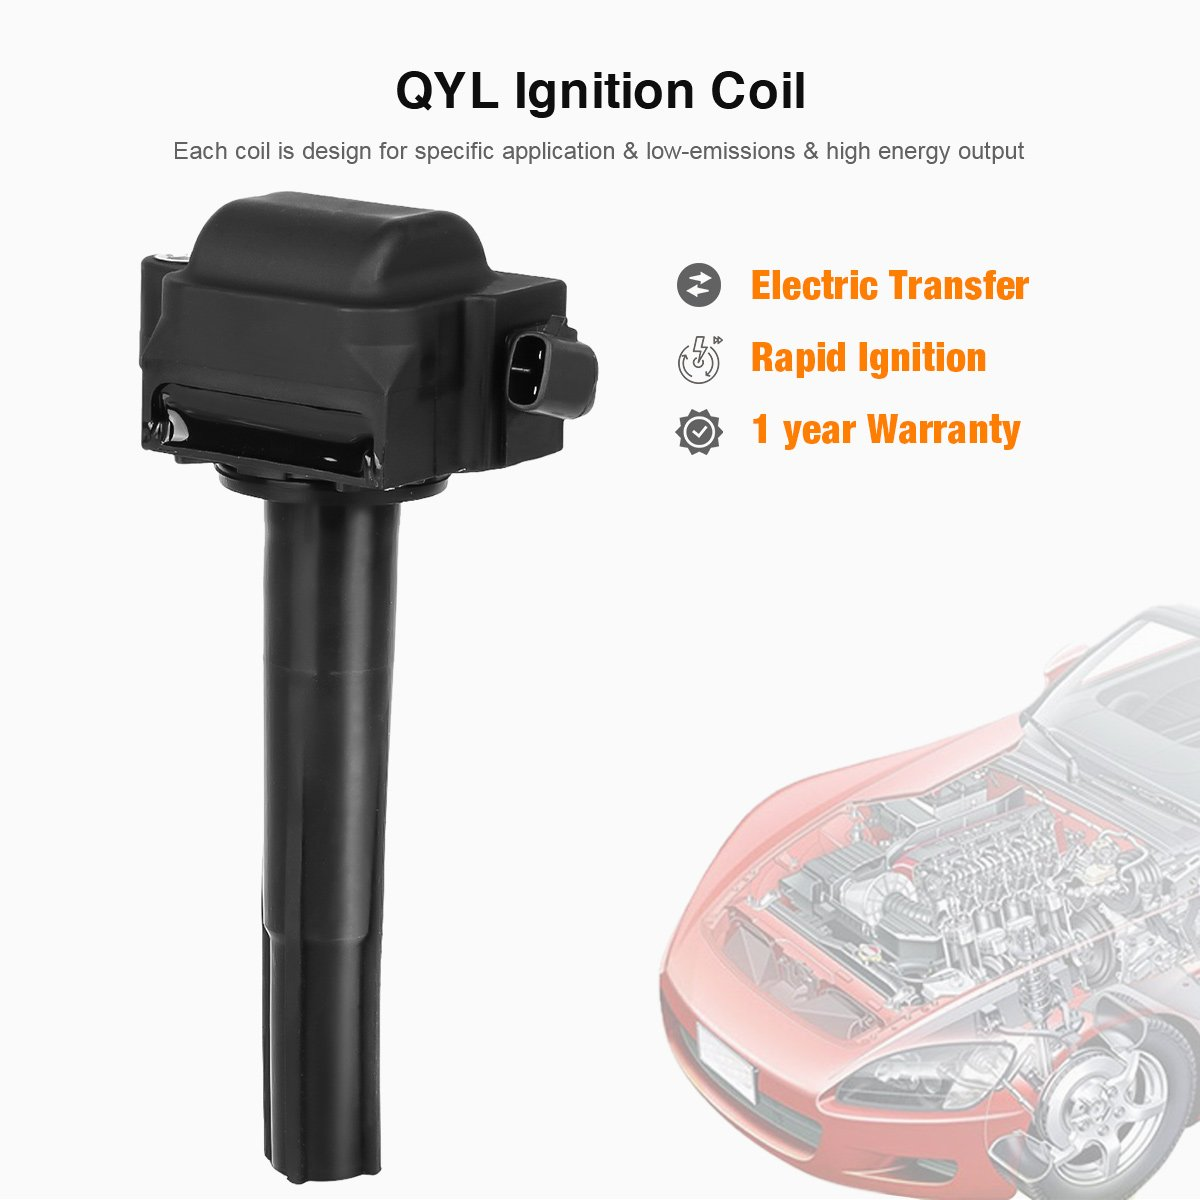 QYL Park of 3Pcs Ignition Coils Replacement for Toyota Solara Avalon Camry  Sienna/Lexus ES300 #UF155 9091902215 5C1488 IC267